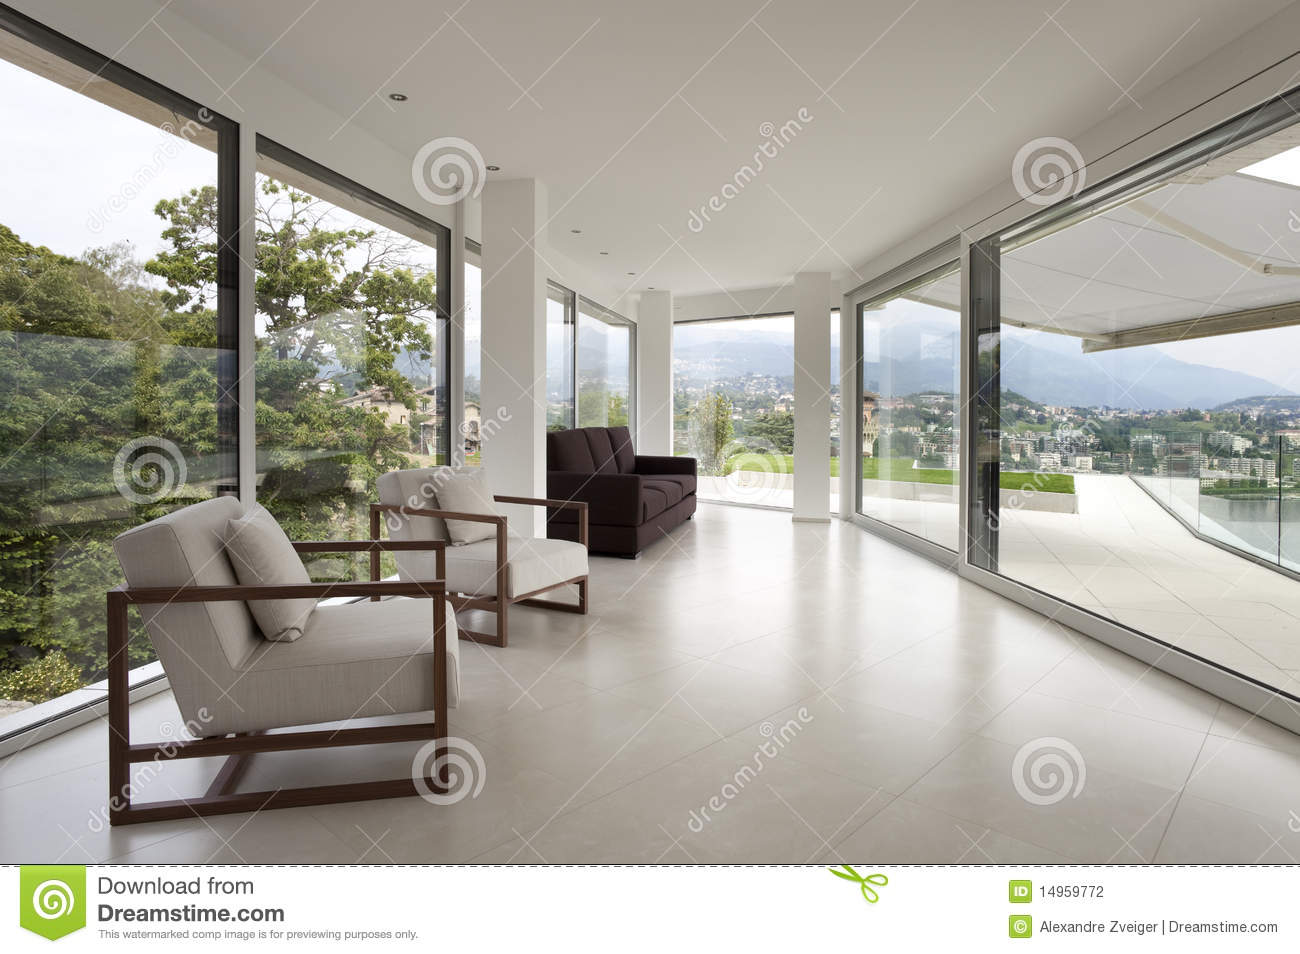 Bel int rieur d 39 une maison moderne photographie stock for Photo interieur de maison moderne